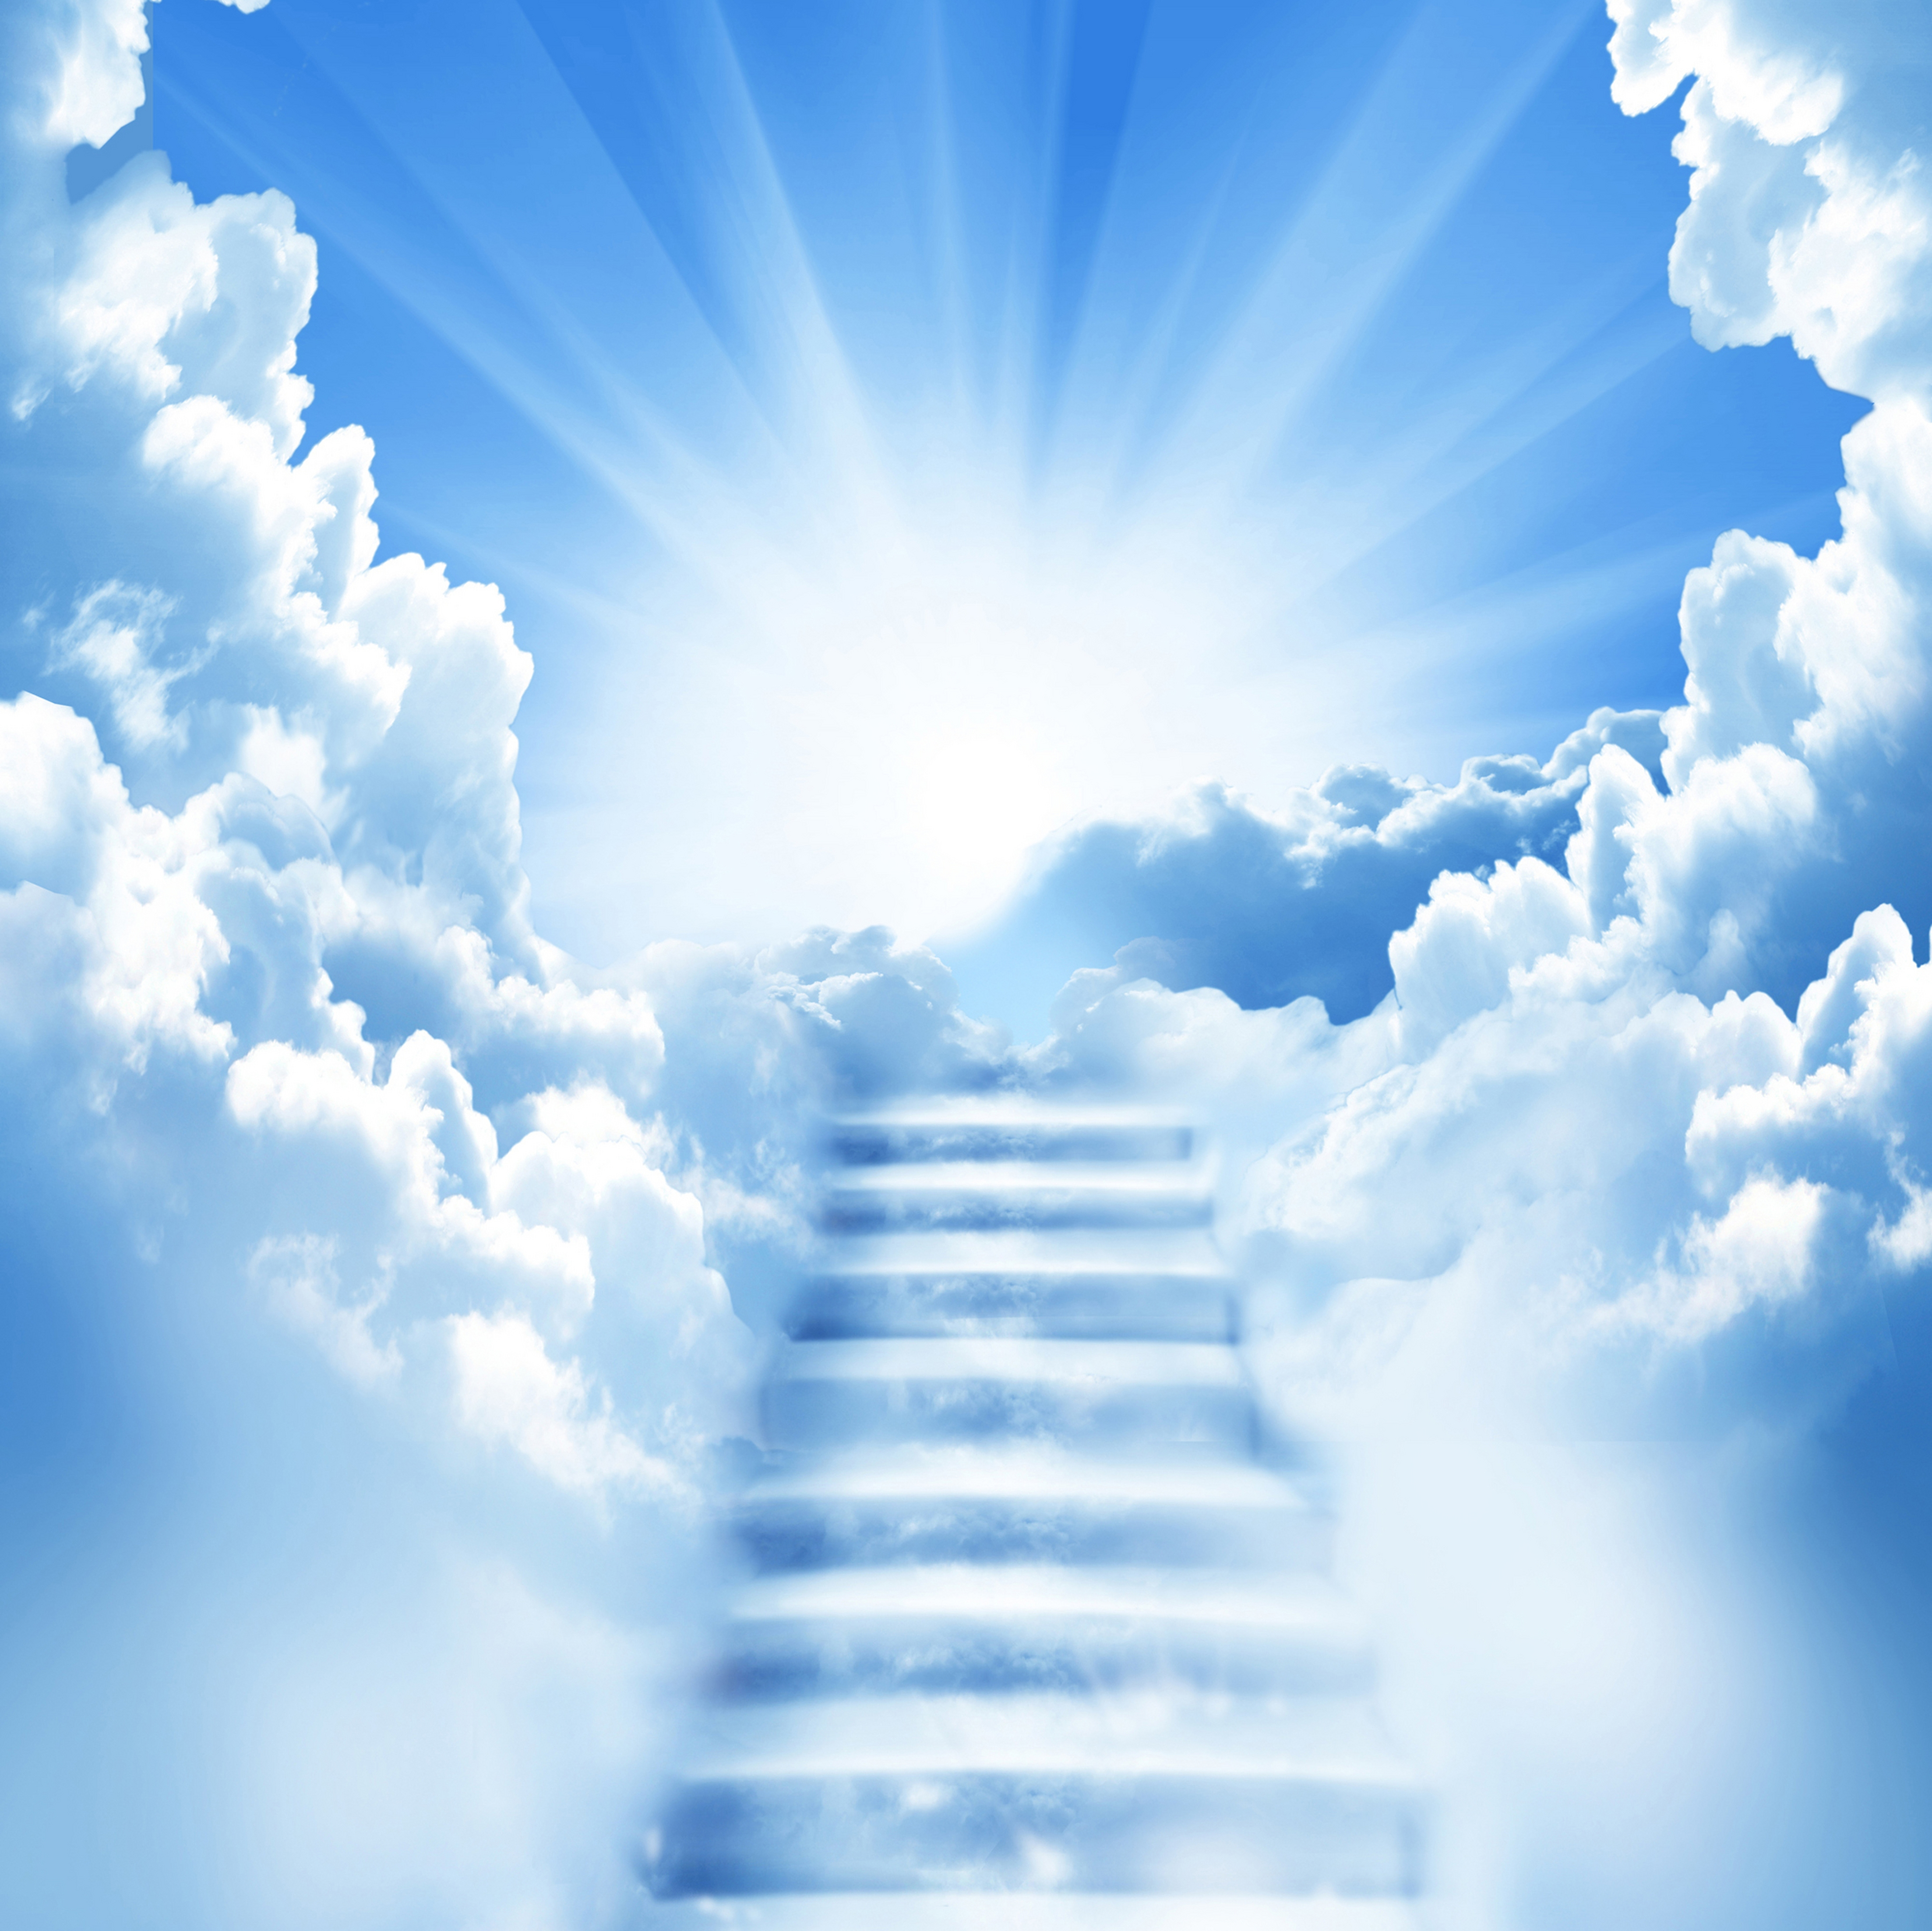 stairway to heaven background - photo #4